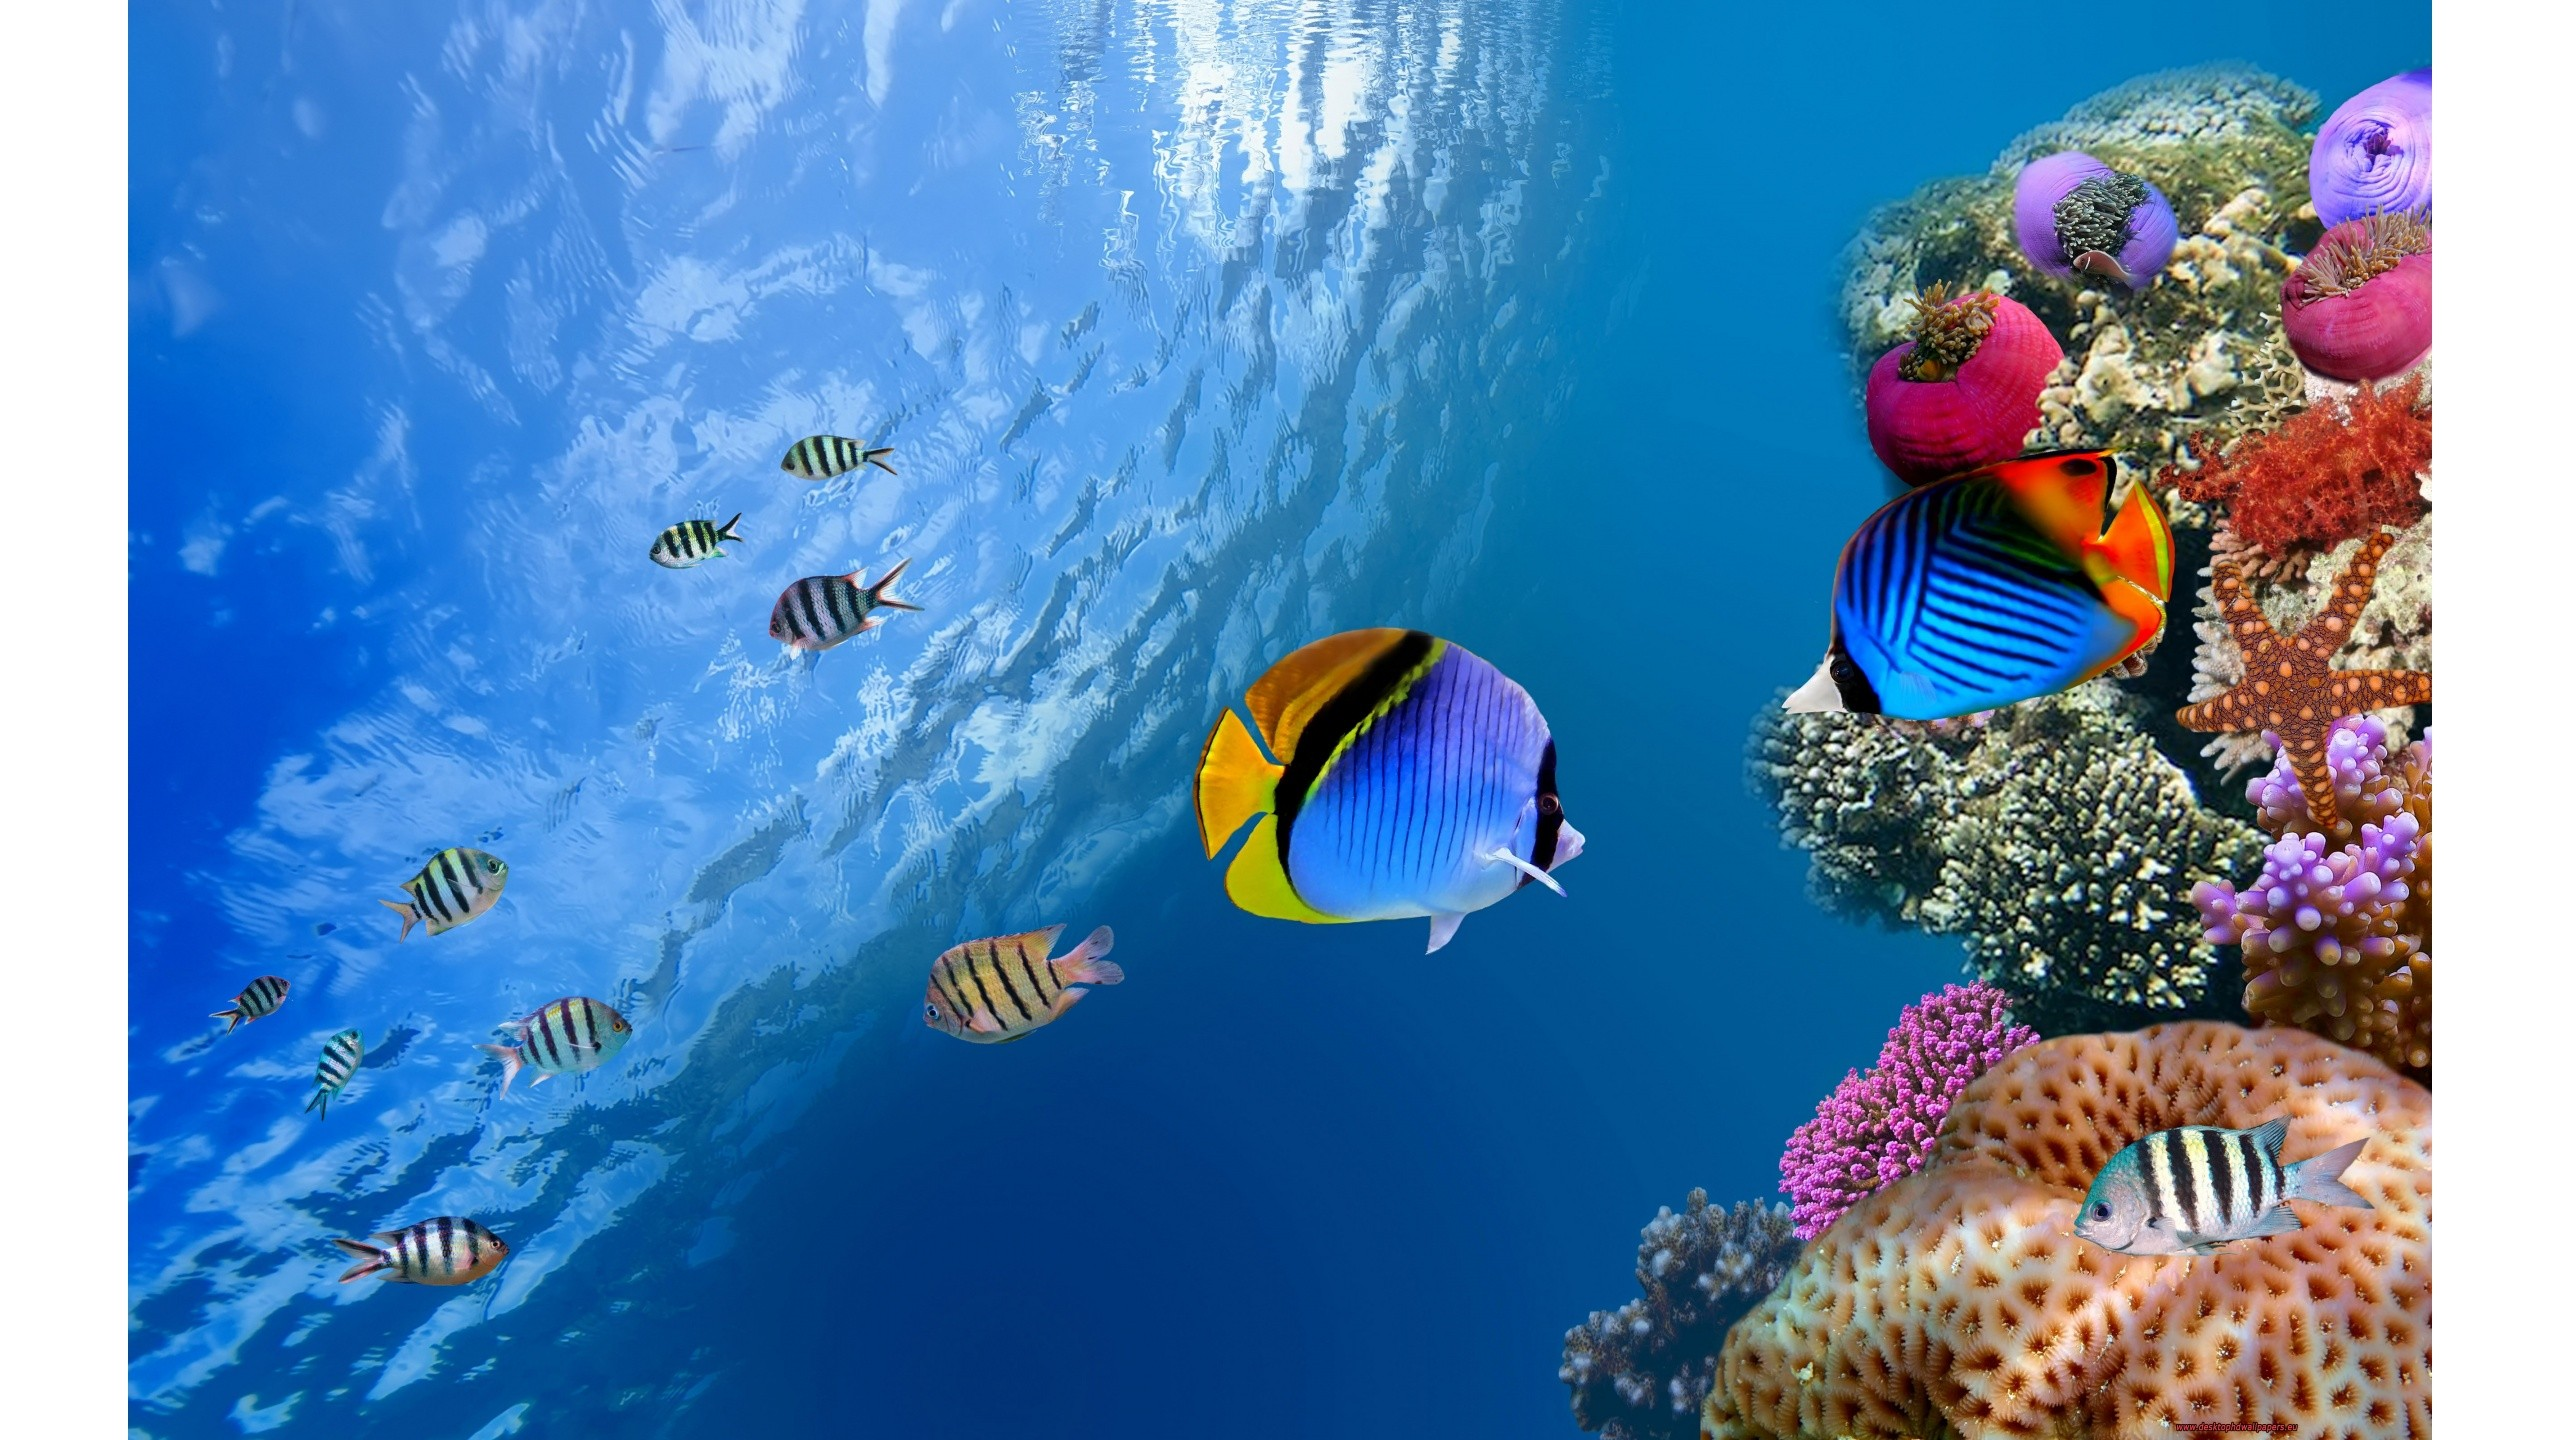 Underwater World Of Fishes Wallpaper 2560x1440 px